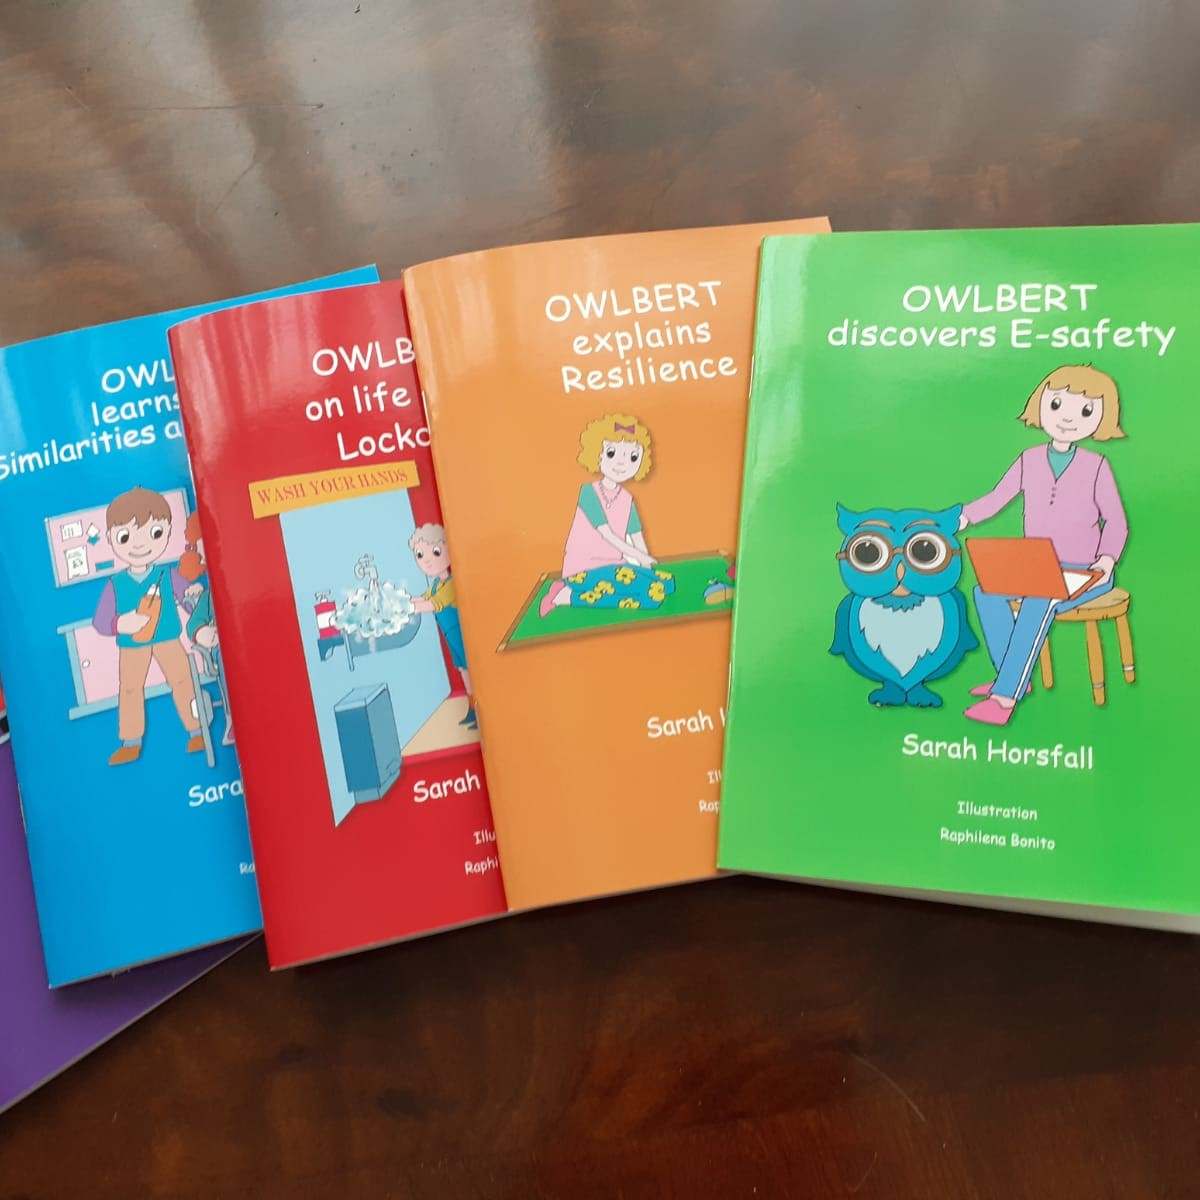 Southampton parent produces books to help children deal with worries